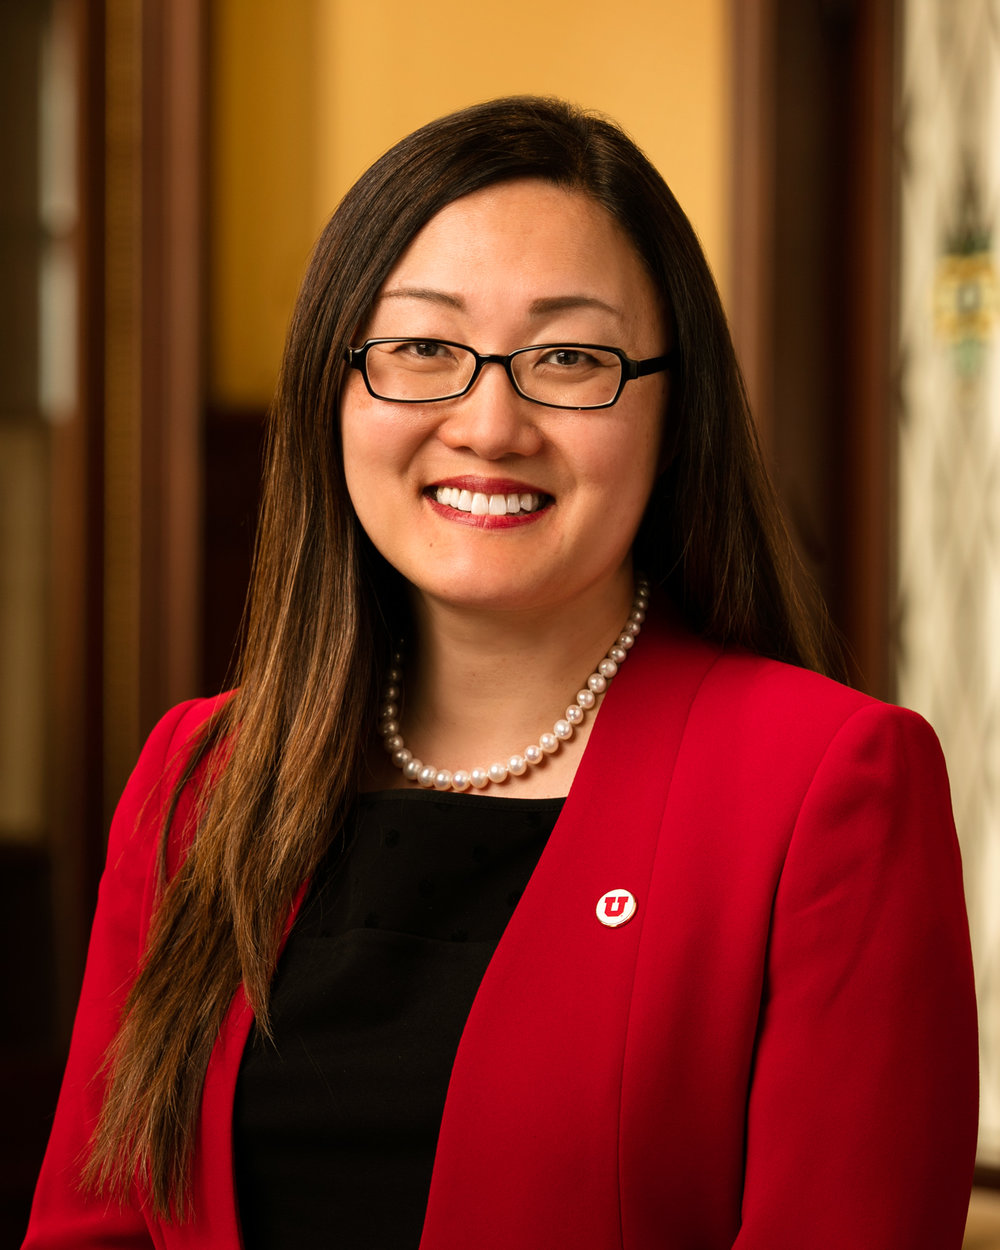 Jean Oh, M. Ed.: Managing Director of Global Internships   Jean Oh joined the University of Utah in 2013 and served as the first Director of UAC Student Services and Main Campus Operations until 2017 when she joined the Hinckley Institute of Politics as the Managing Director of the Global Internship Program.   jean.oh@hinckley.utah.edu